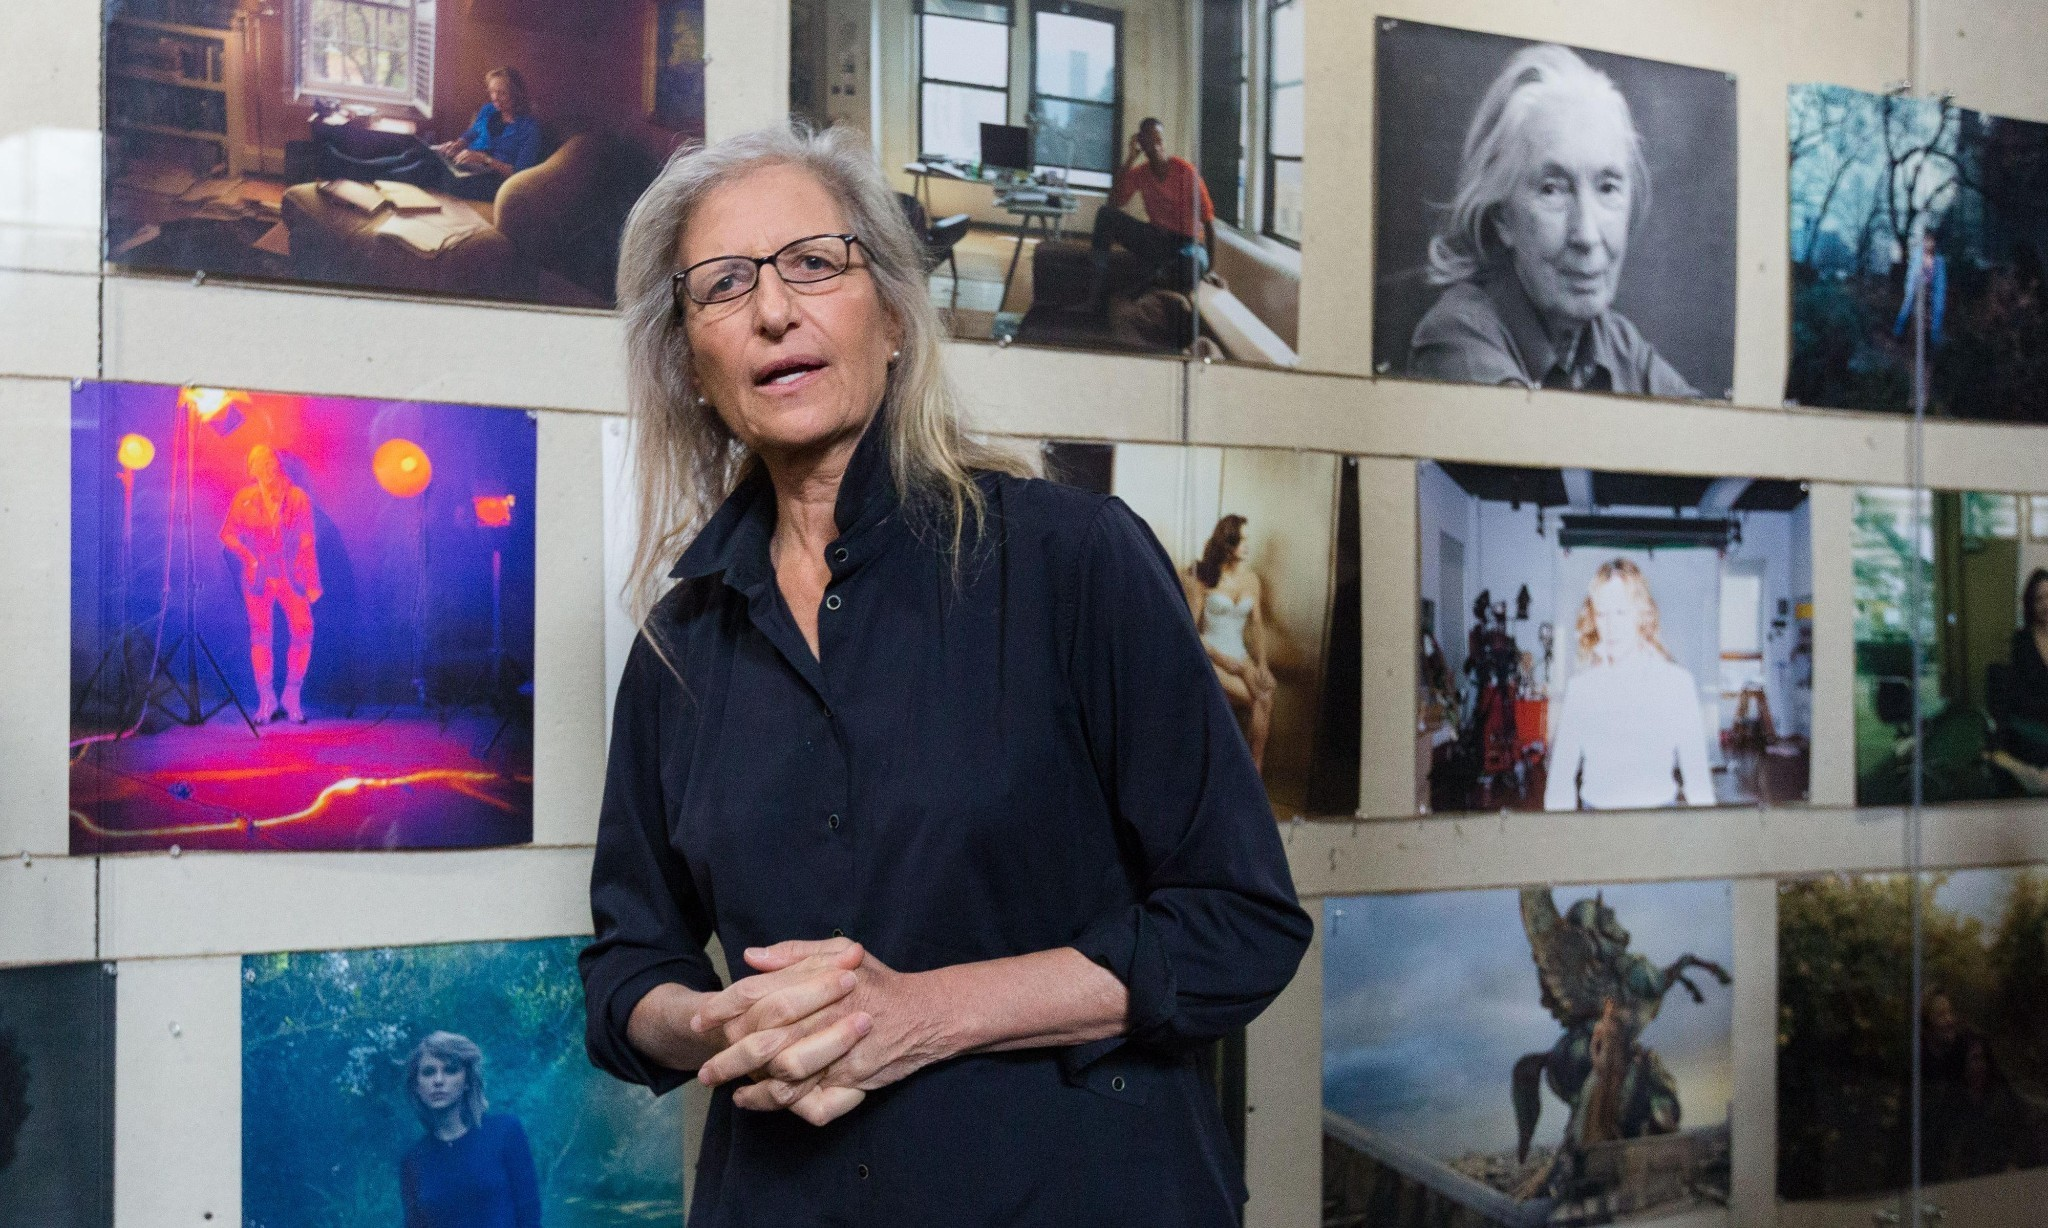 Annie Leibovitz: latest show explores women as 'whole human beings'